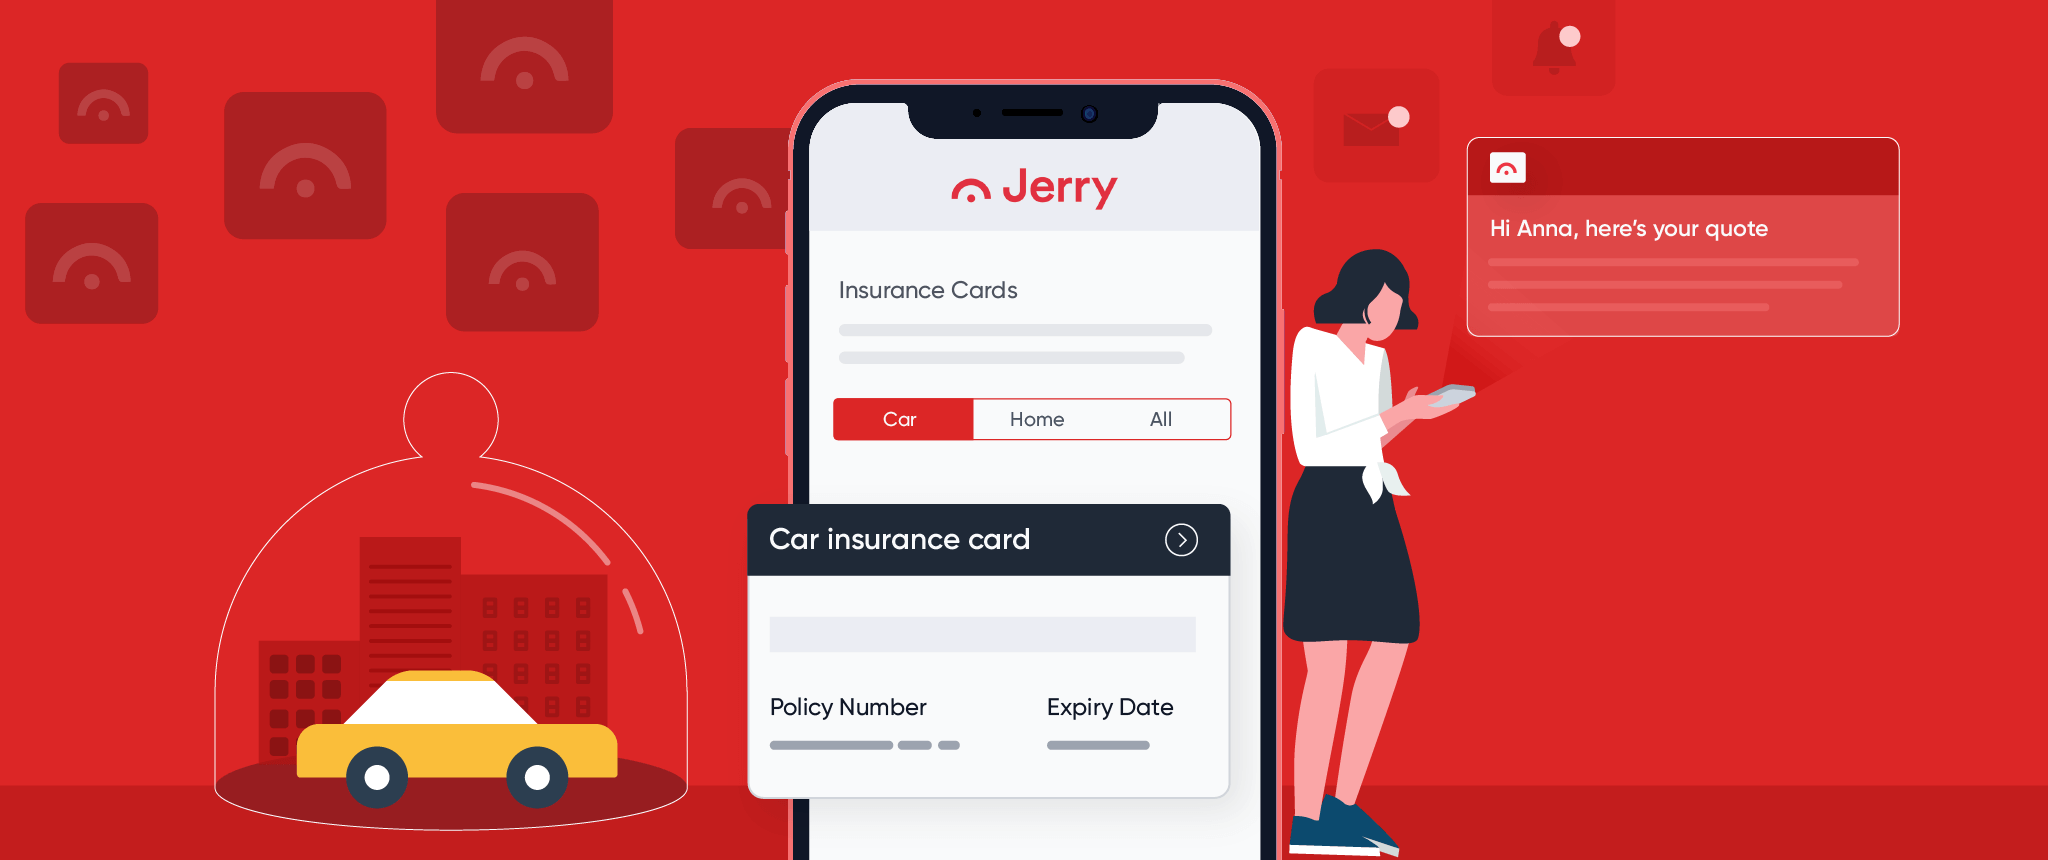 How Jerry.ai Uses Personalized Communications to Increase Conversions by 20%